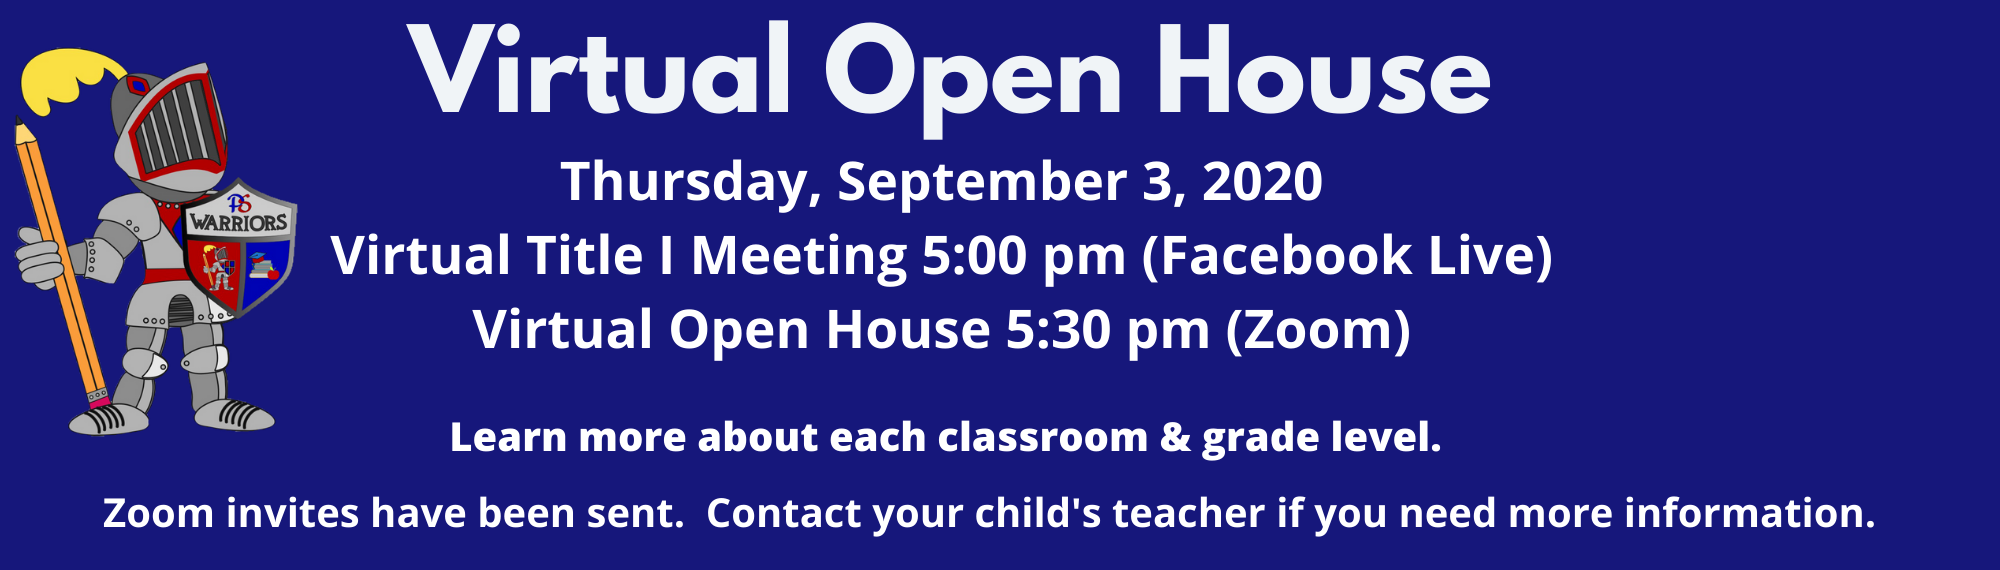 Virtual Open House